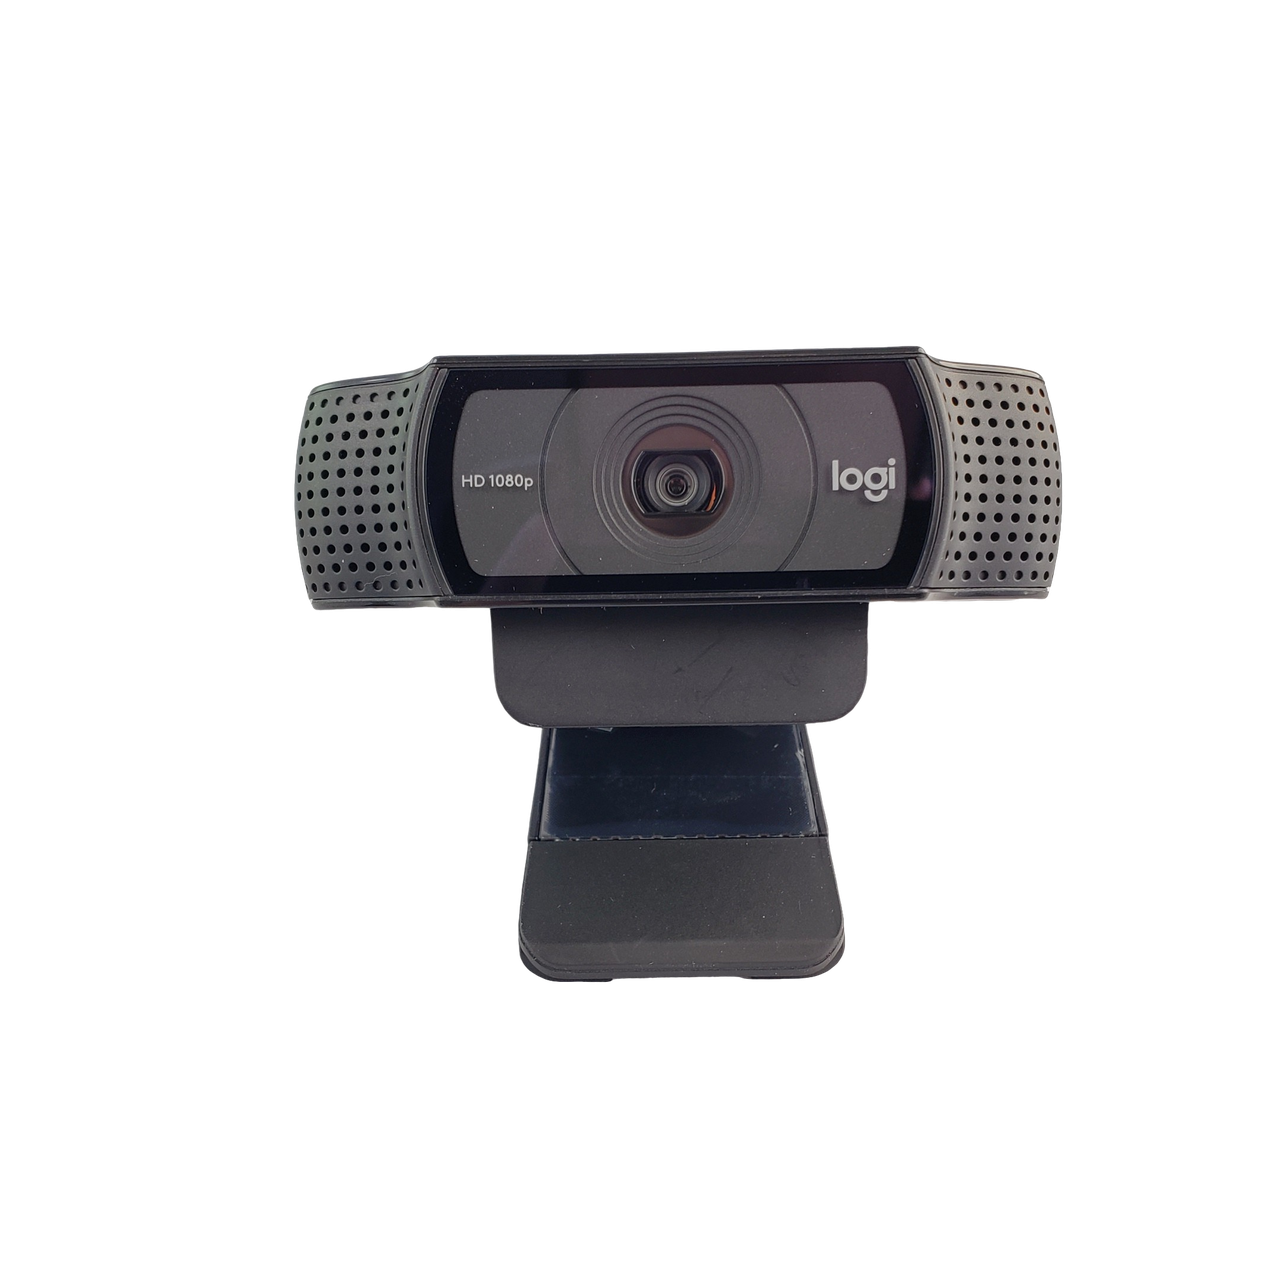 Веб-камера Logitech C920 HD Pro Webcam Full 1080p high definition Black Витрина